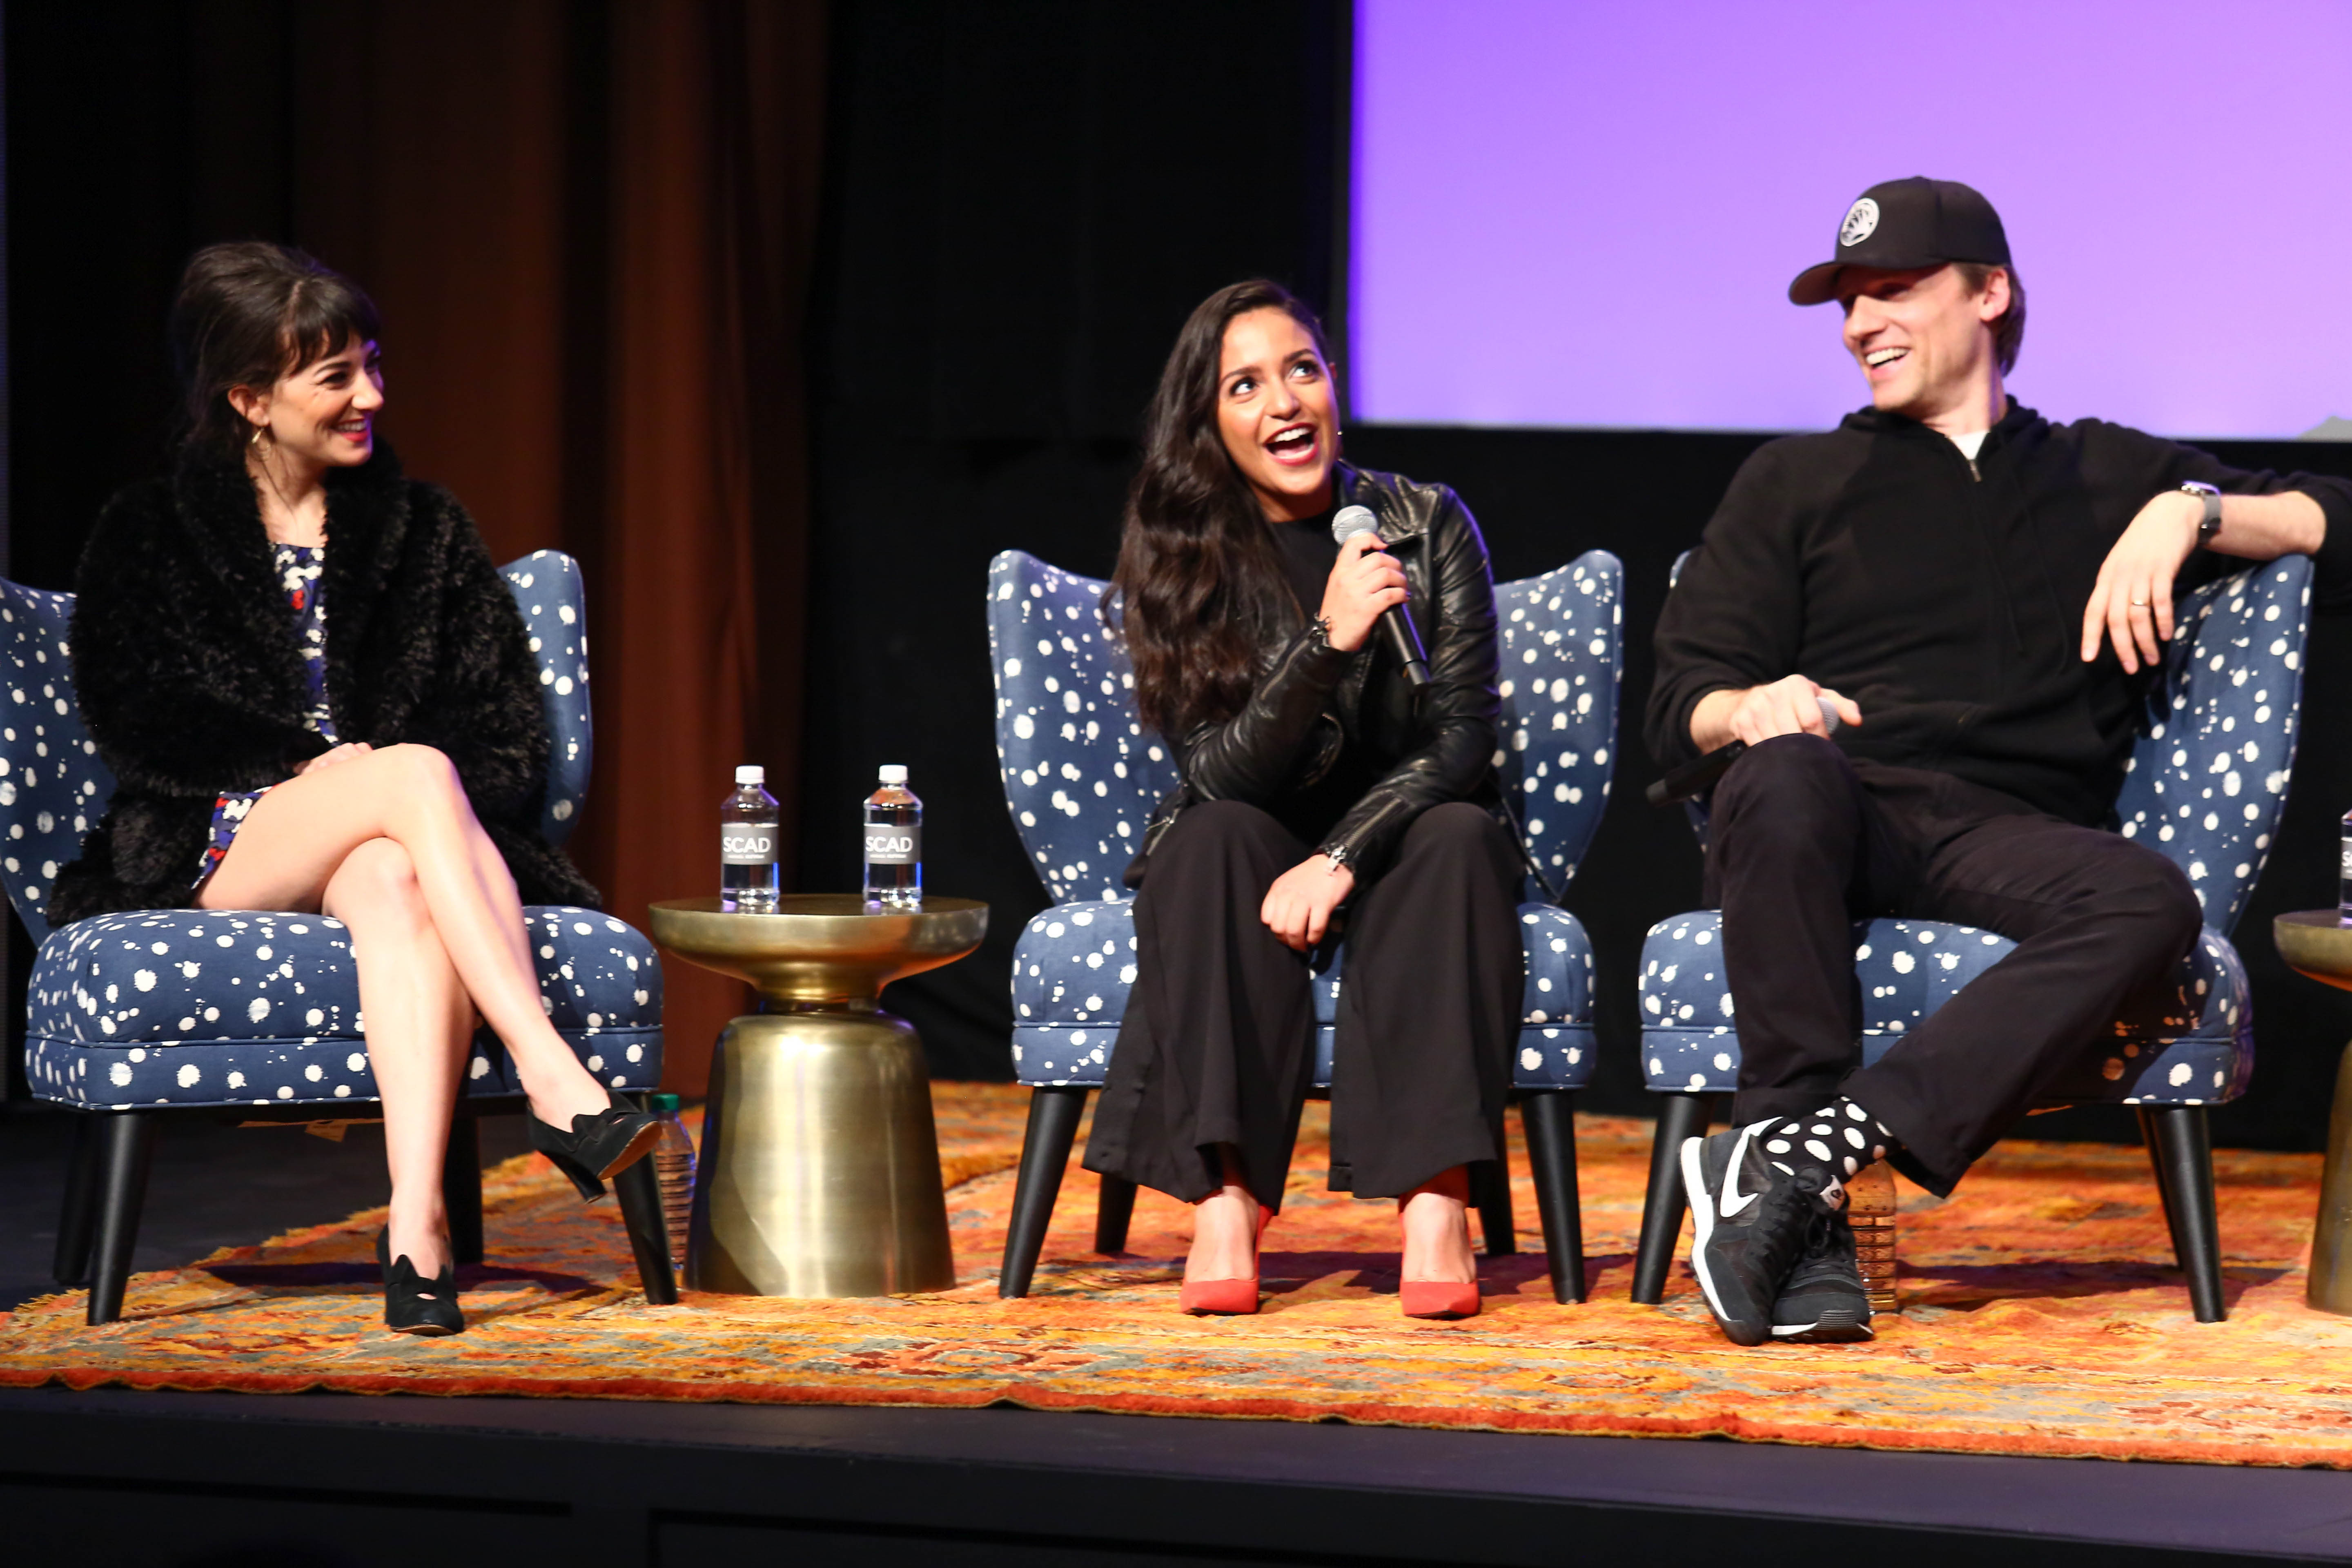 Actress Sheila Vand, Actress Coral Peña, and actor Teddy Sears speak at a Q&A for '24: Legacy' during Day One of the aTVfest 2017 presented by SCAD on February 2, 2017, in Atlanta, Georgia. (Photo by Astrid Stawiarz/Getty Images)